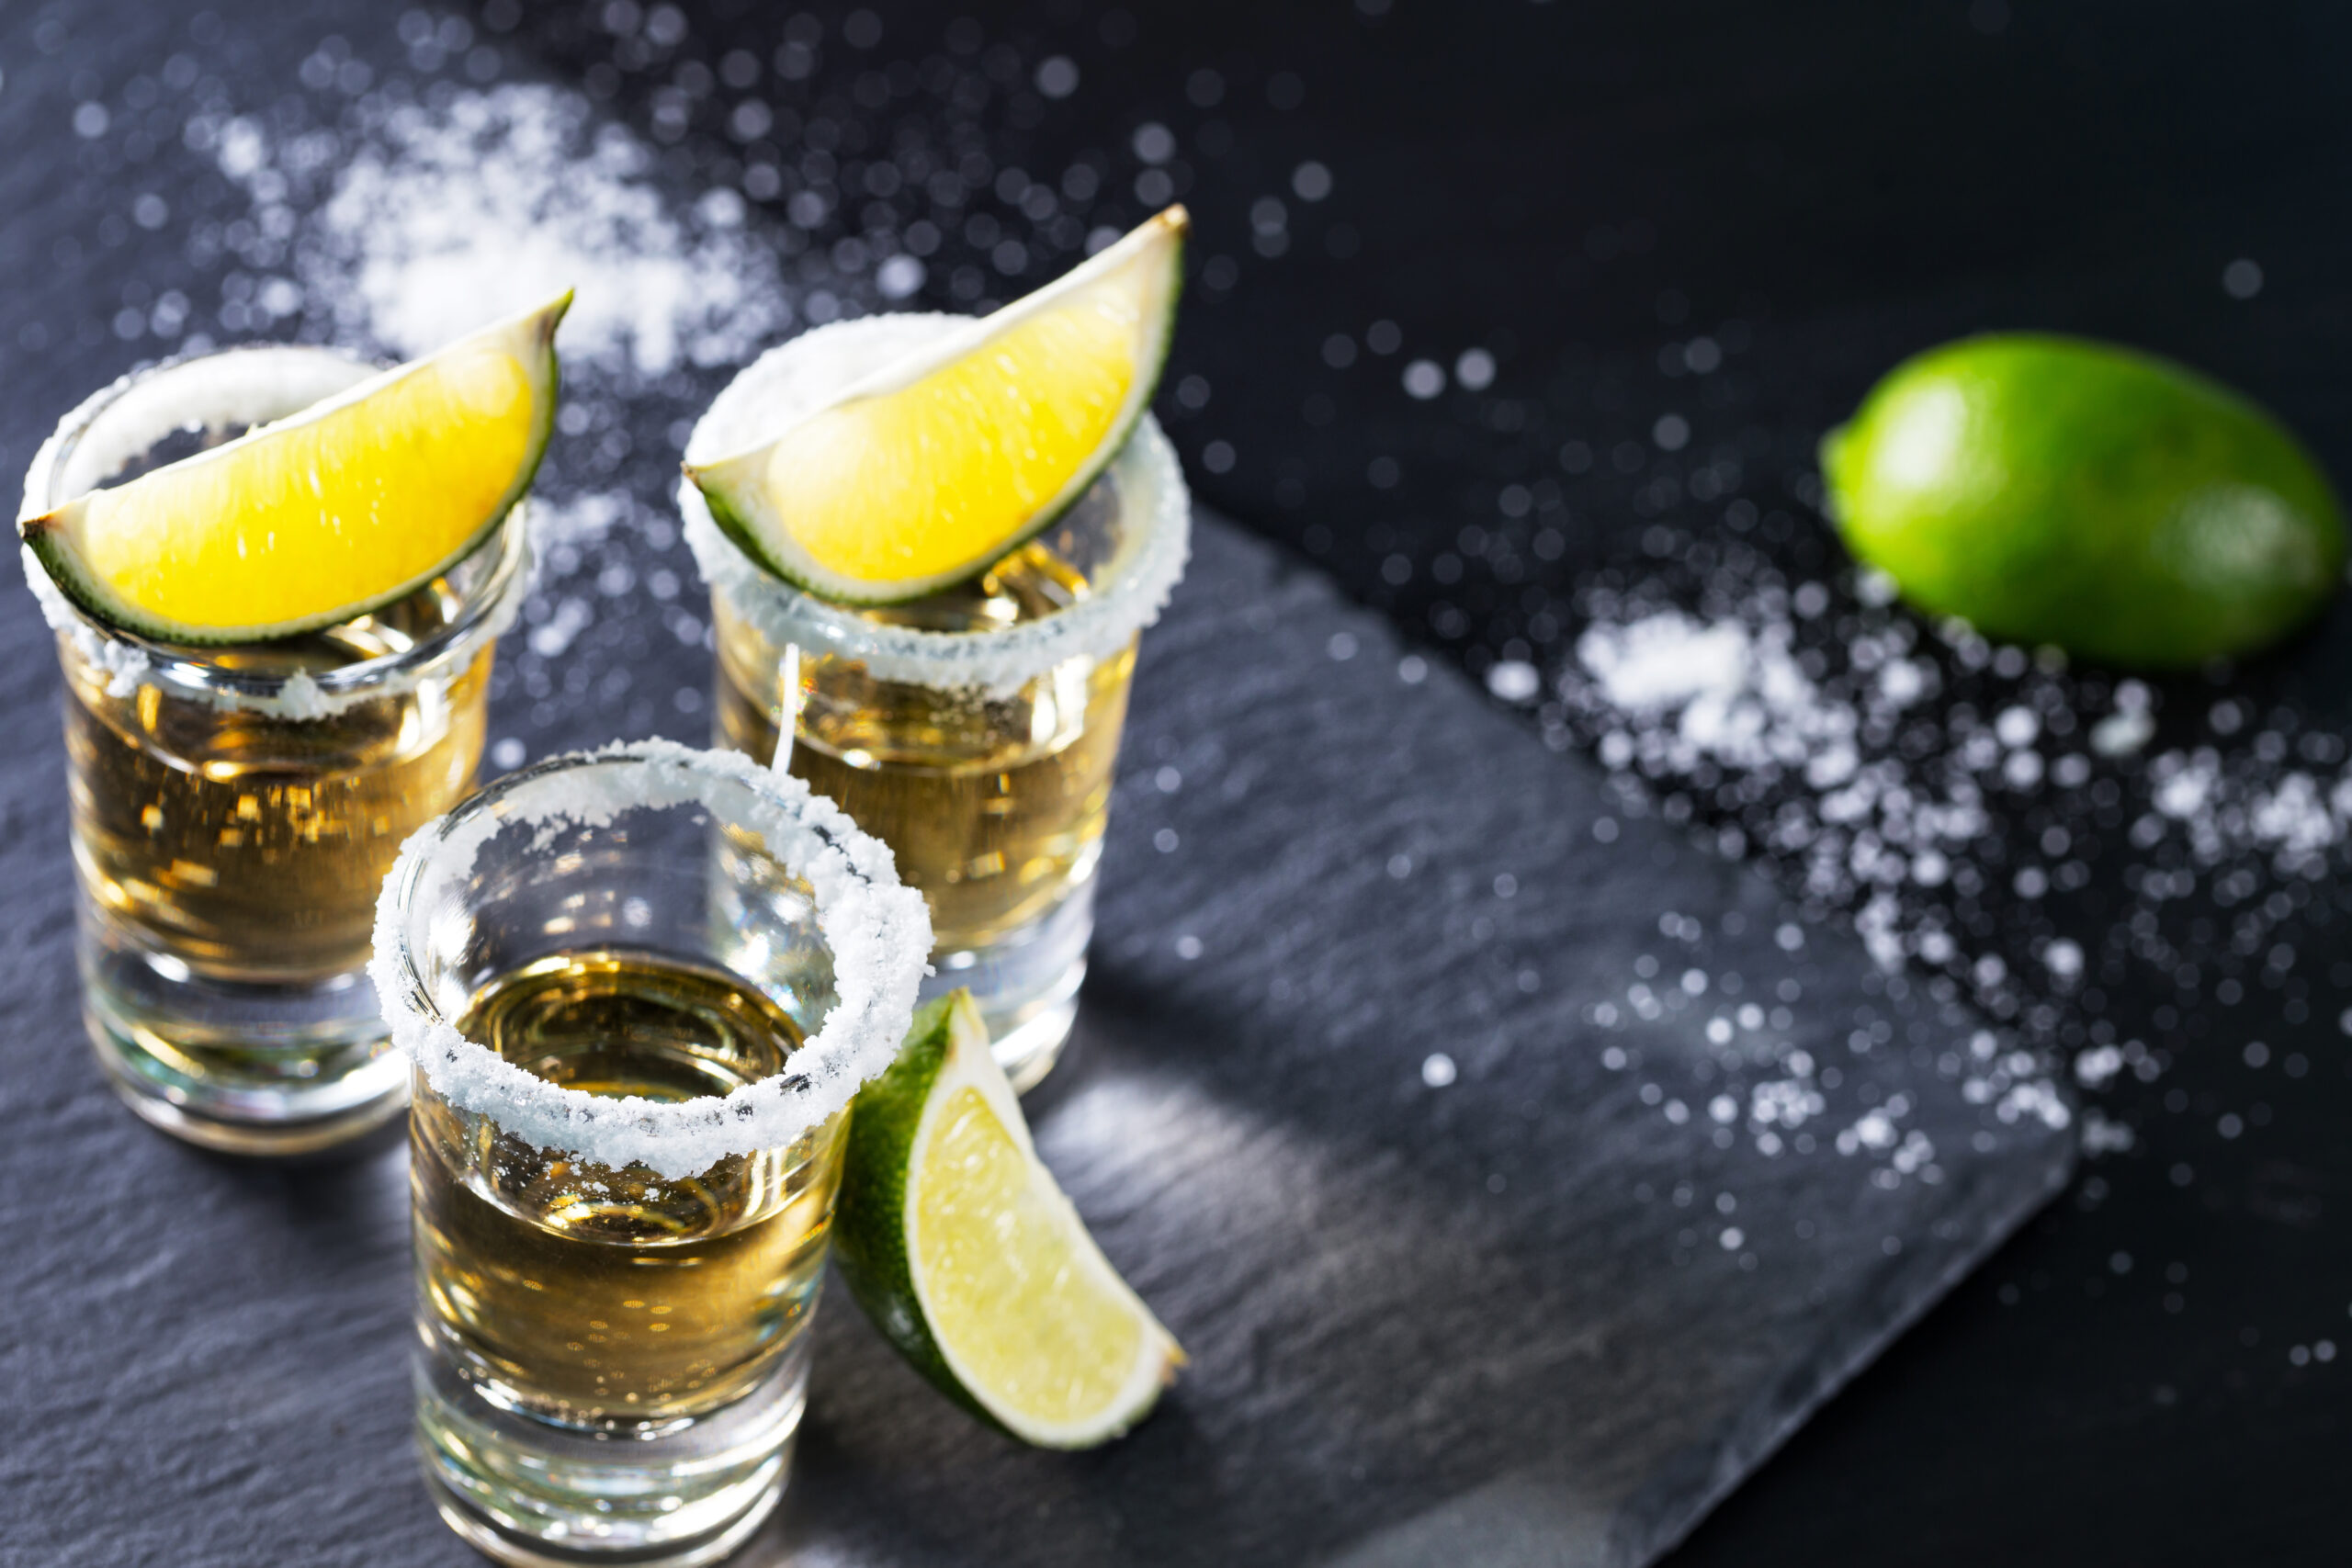 Tequila/